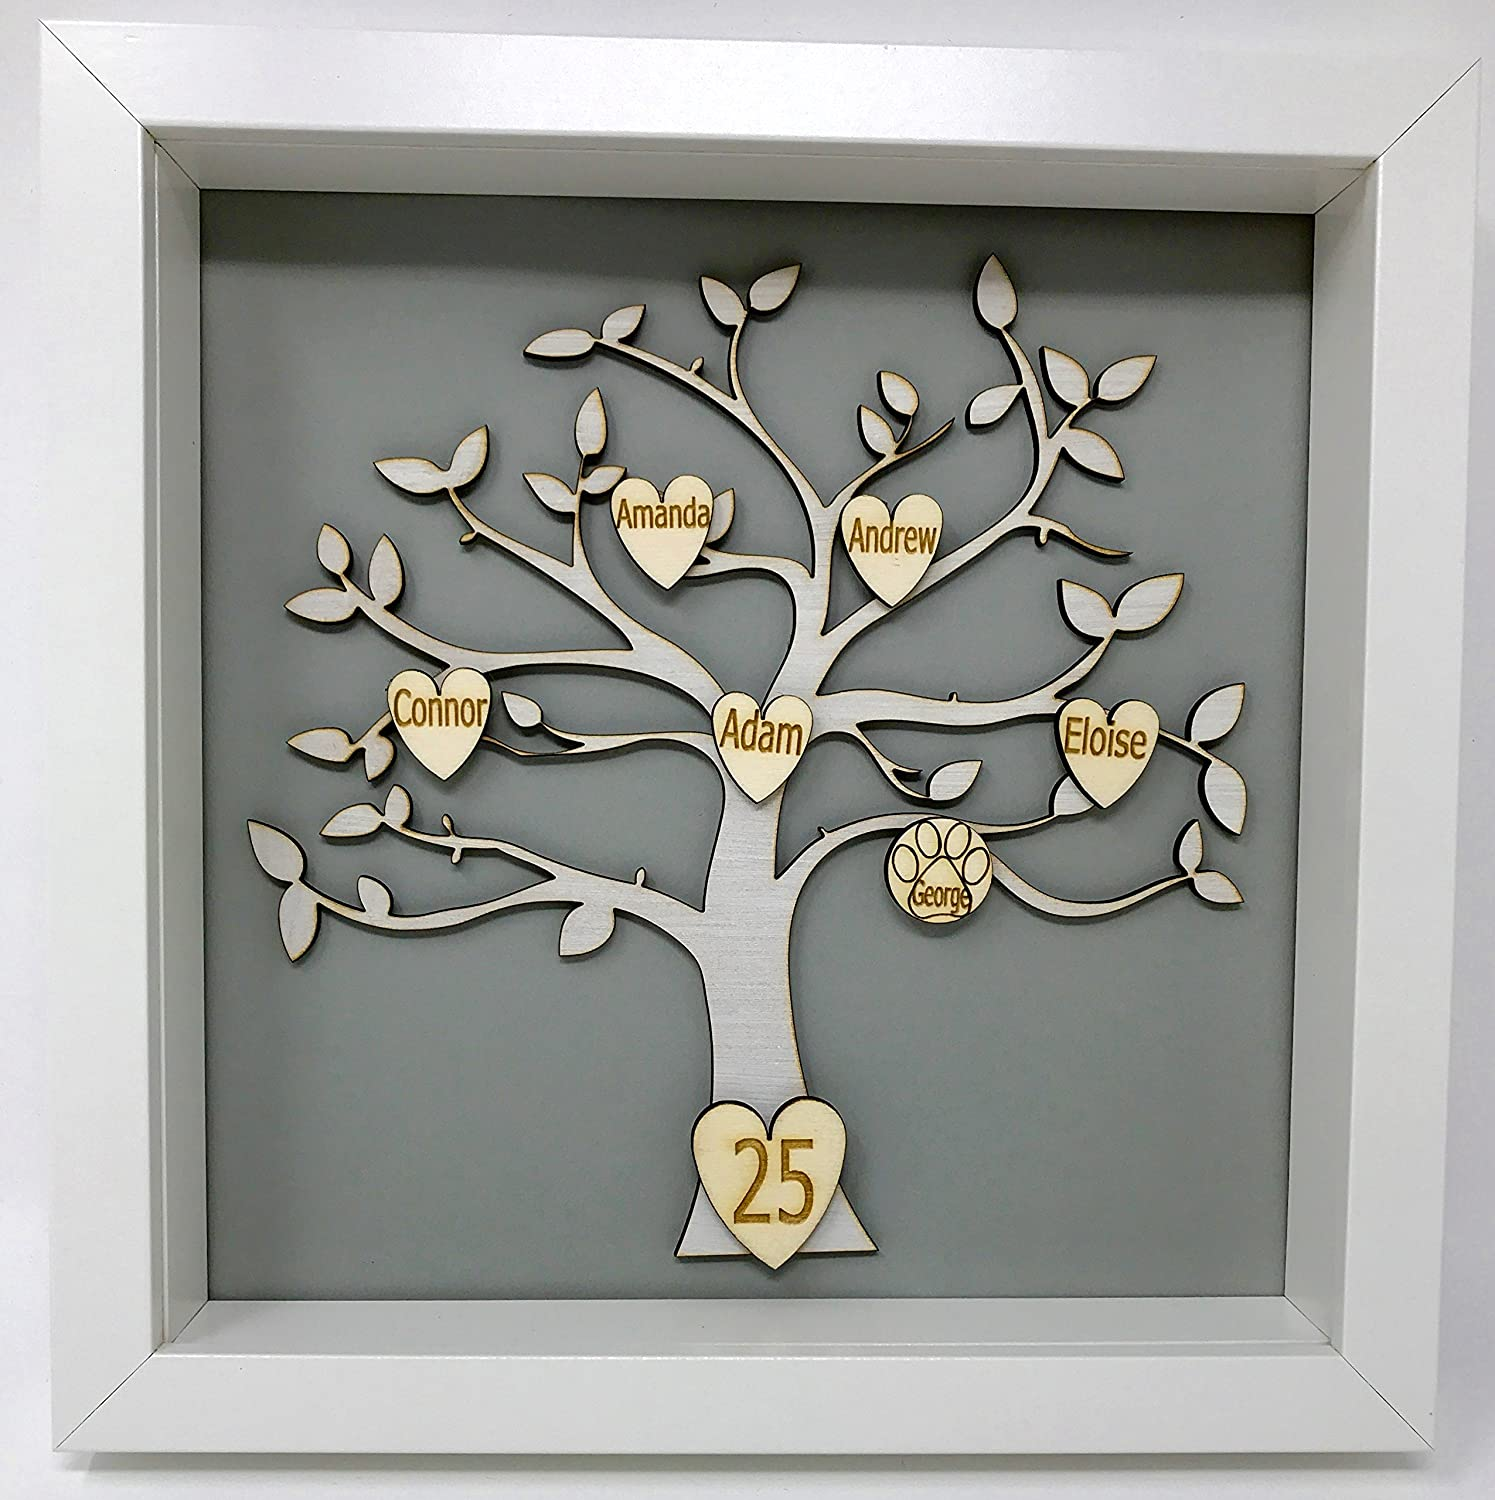 Family Tree of Life Frame Personalised With Up To 10 Names: Amazon ...